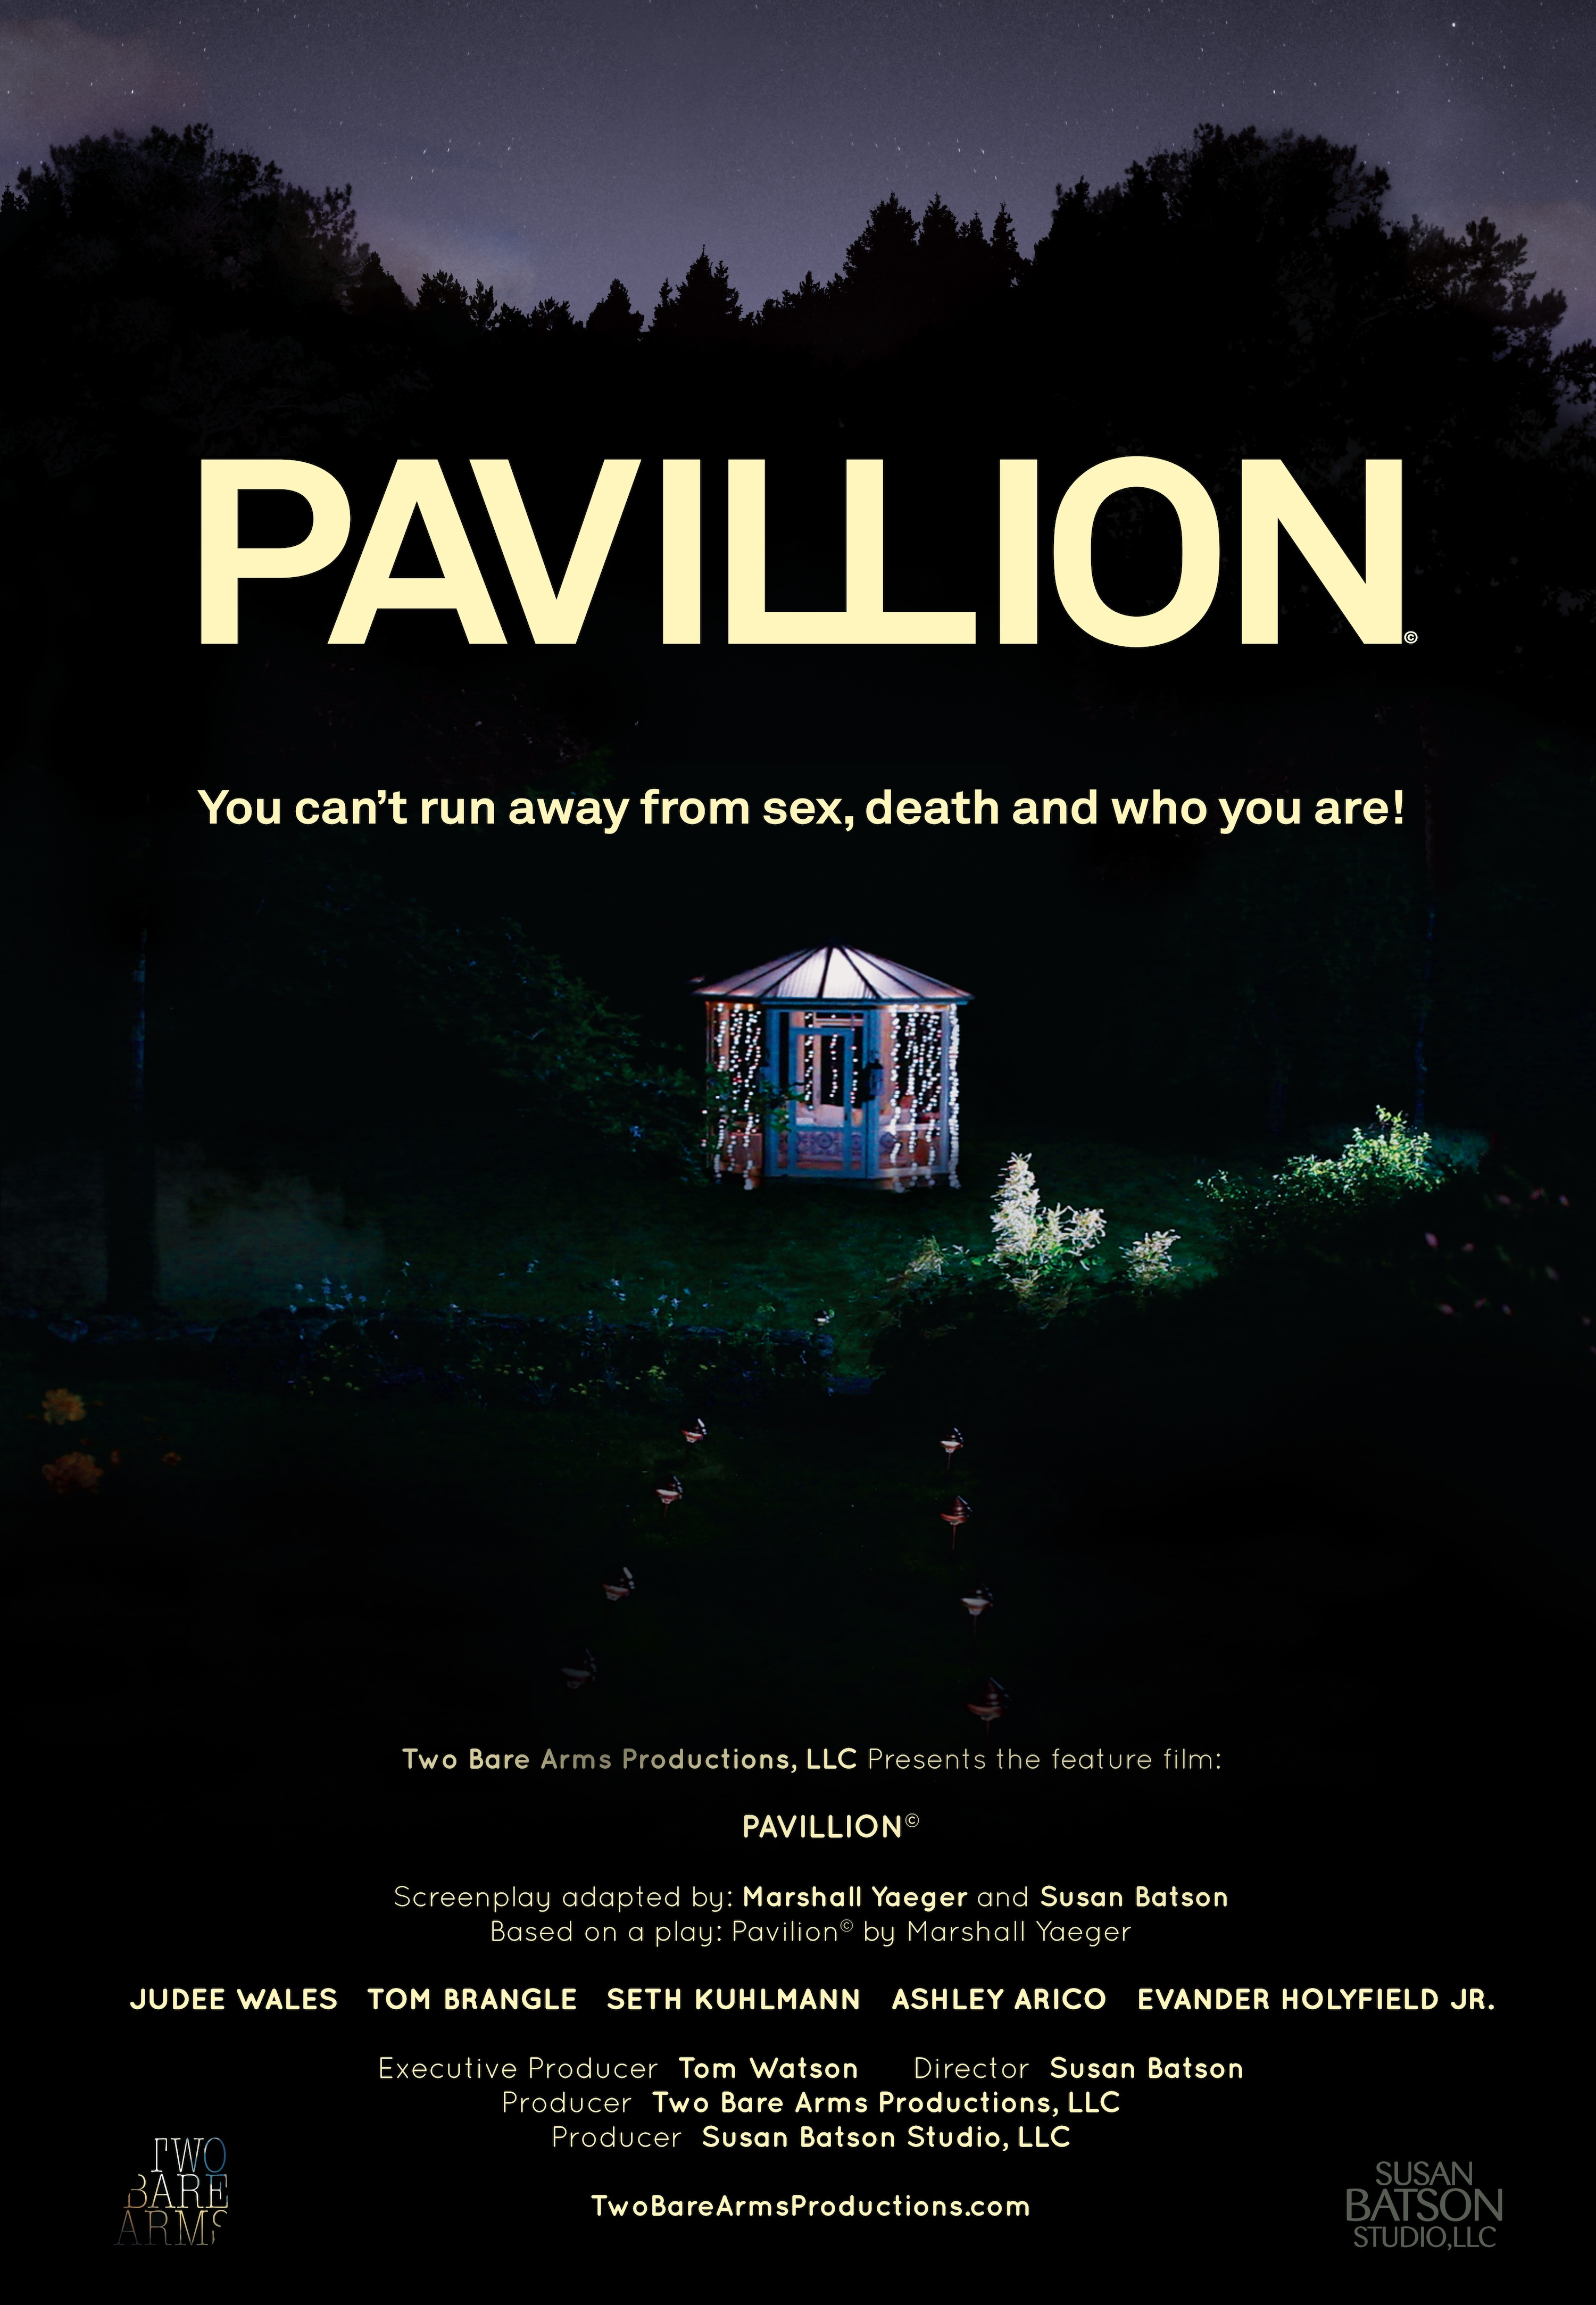 PAVILLION_POSTER.FINAL.SMALL